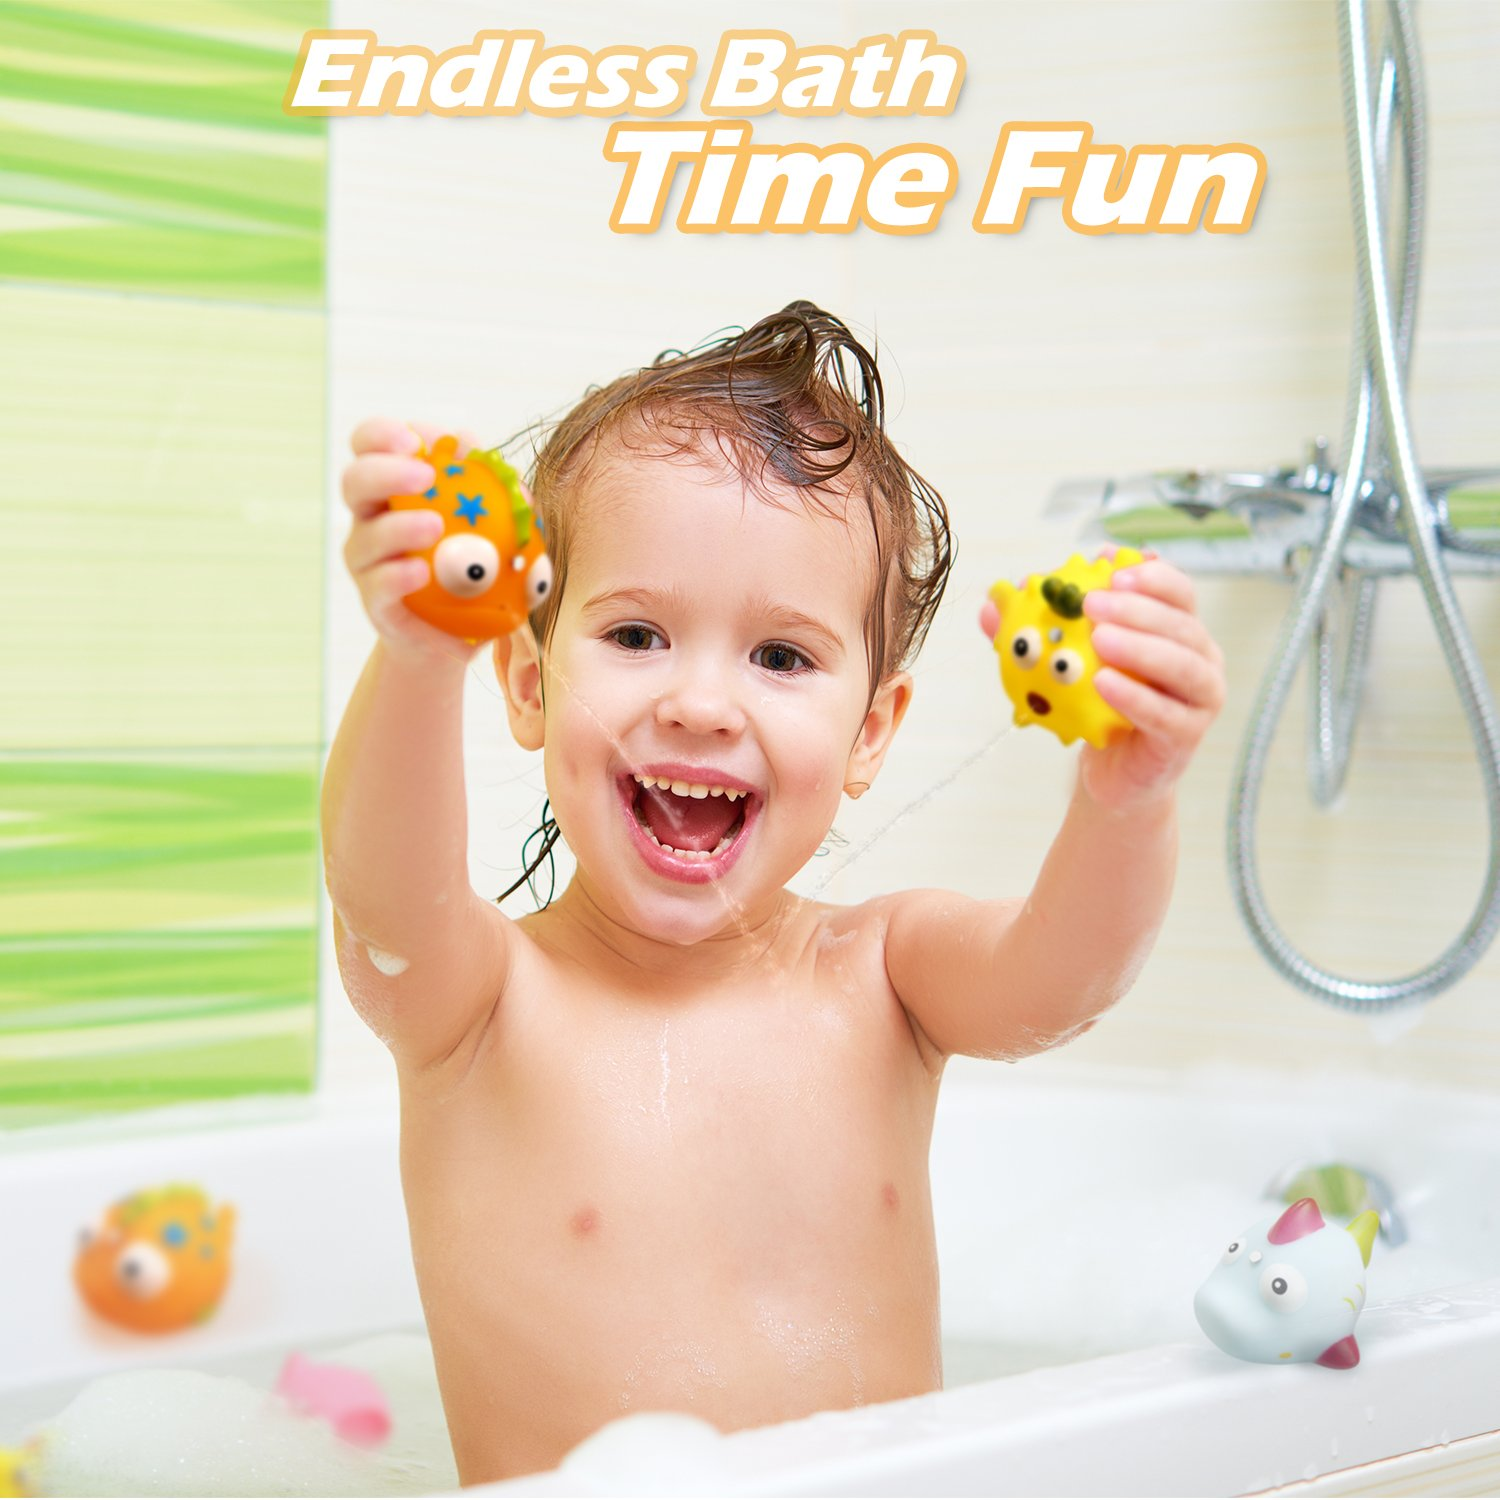 Baby Bath Time Fun Floating Fish Mini Fishing Set Bathtub